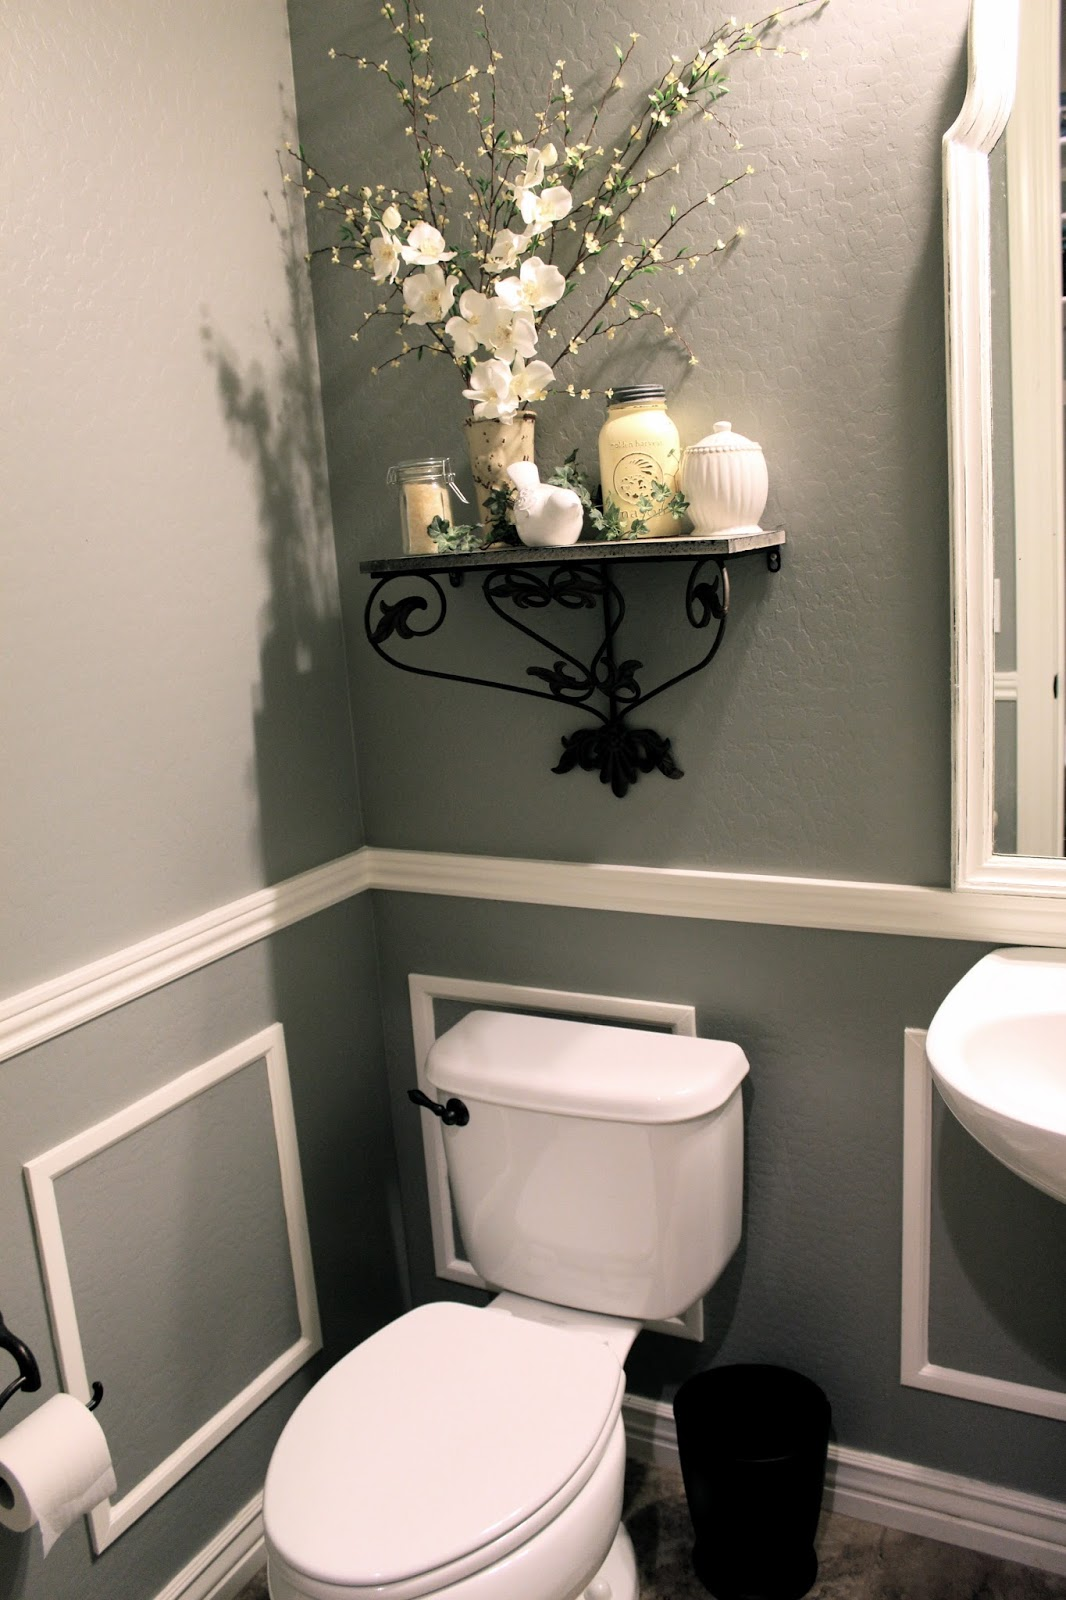 Little bit of paint thrifty thursday bathroom reveal - Bathroom decor ideas for small bathrooms ...